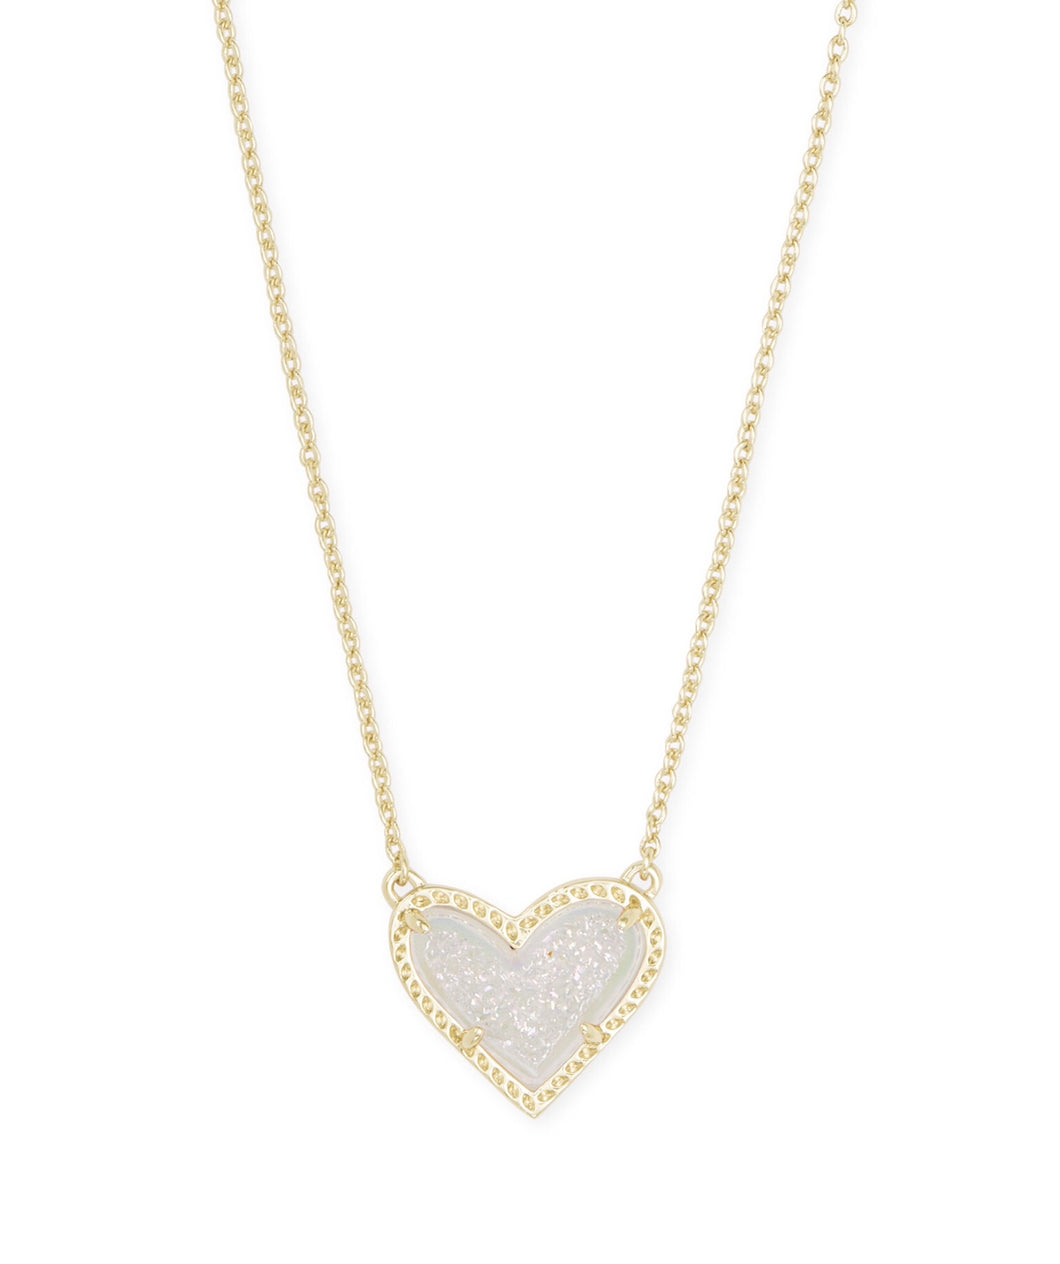 Kendra Scott: Ari Heart Short Necklace - Gold Iridescent Drusy - The Vogue Boutique